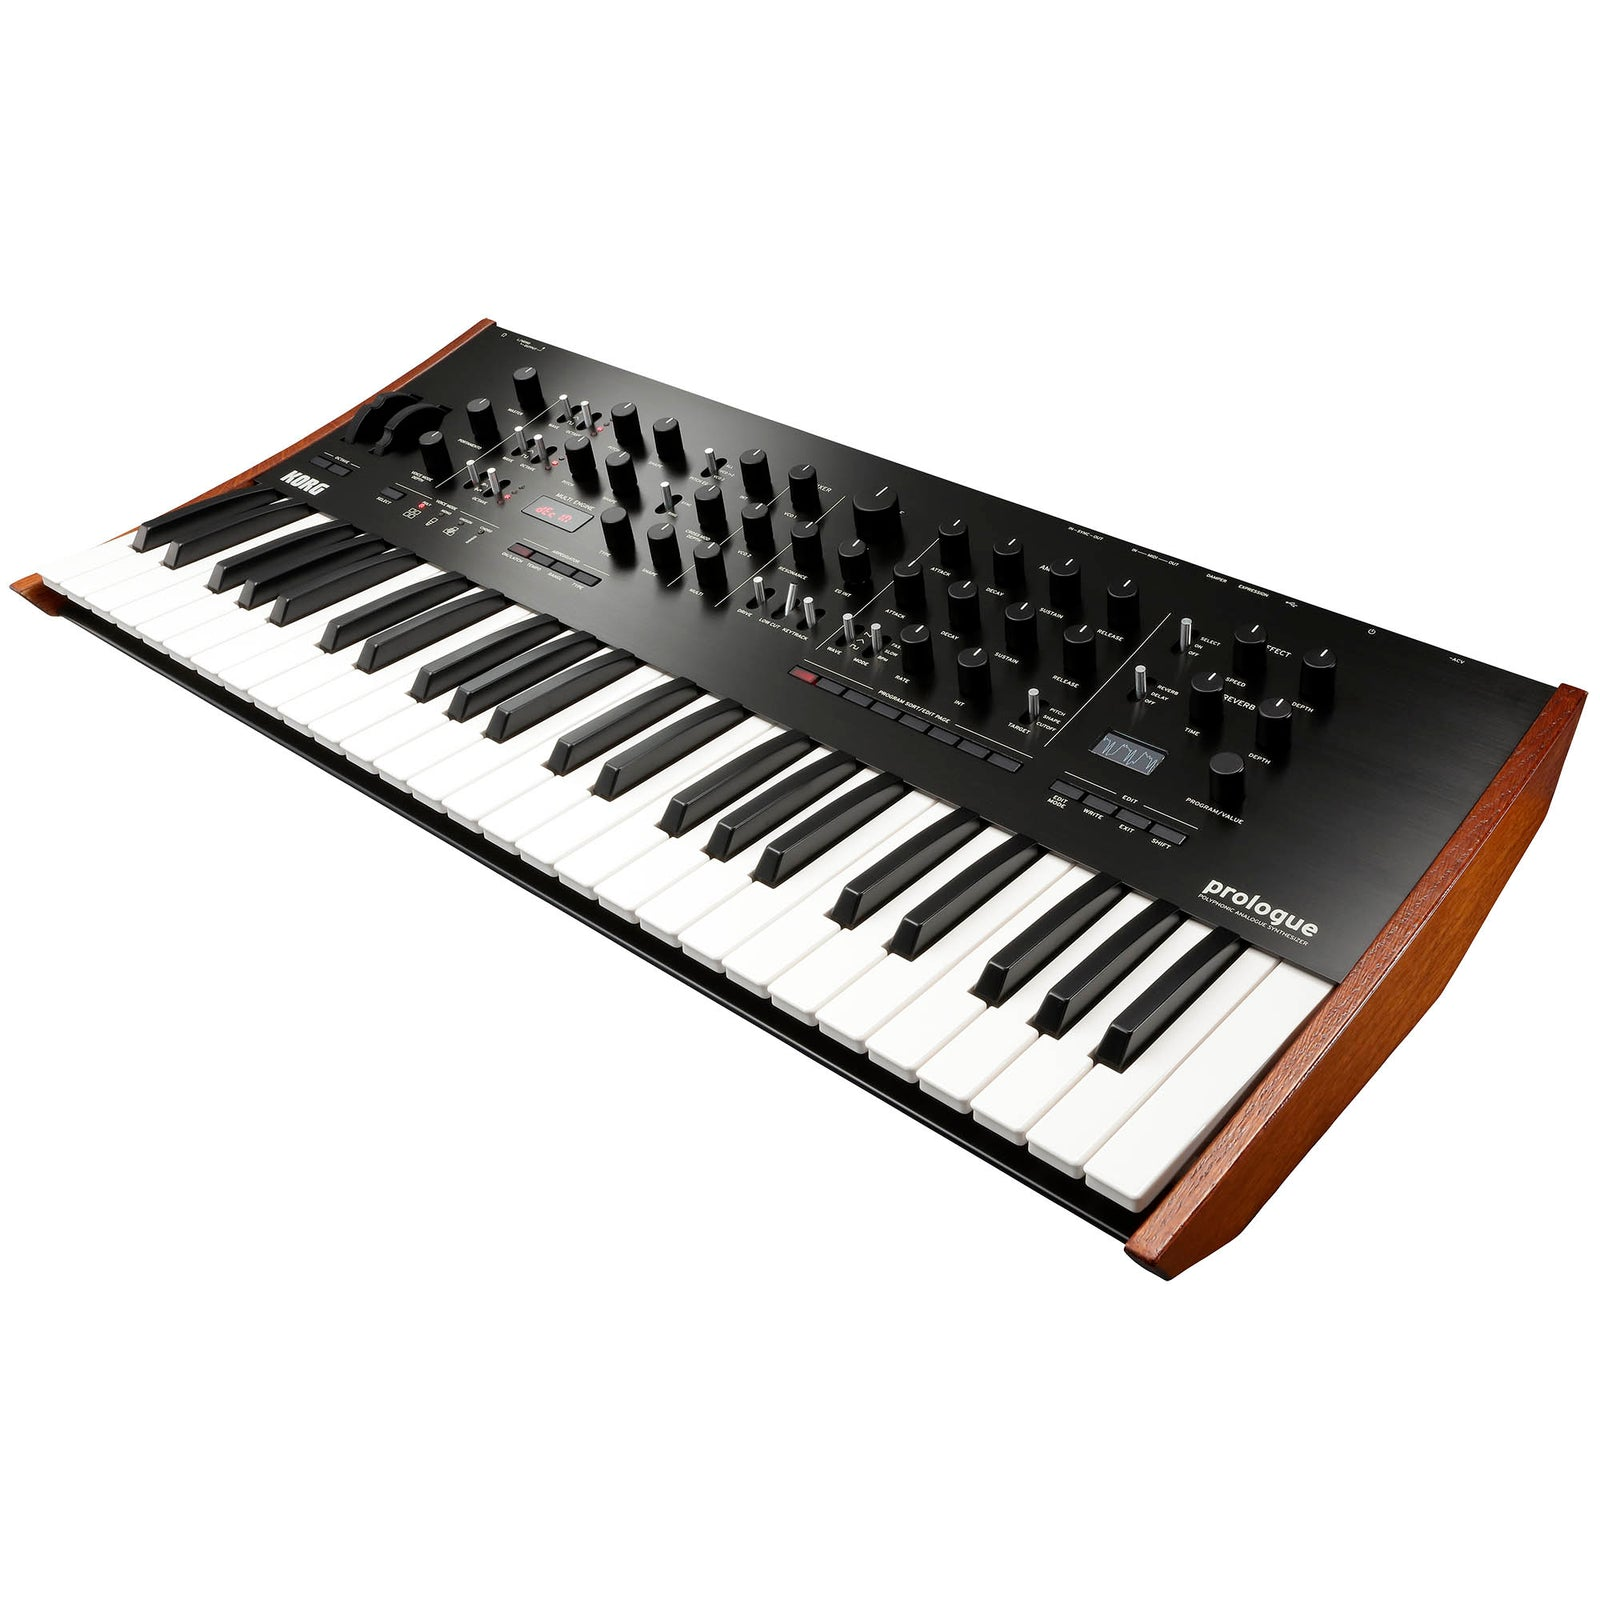 Korg Prologue8 8-Voice Polyphonic Analog Synthesizer - 49-Key